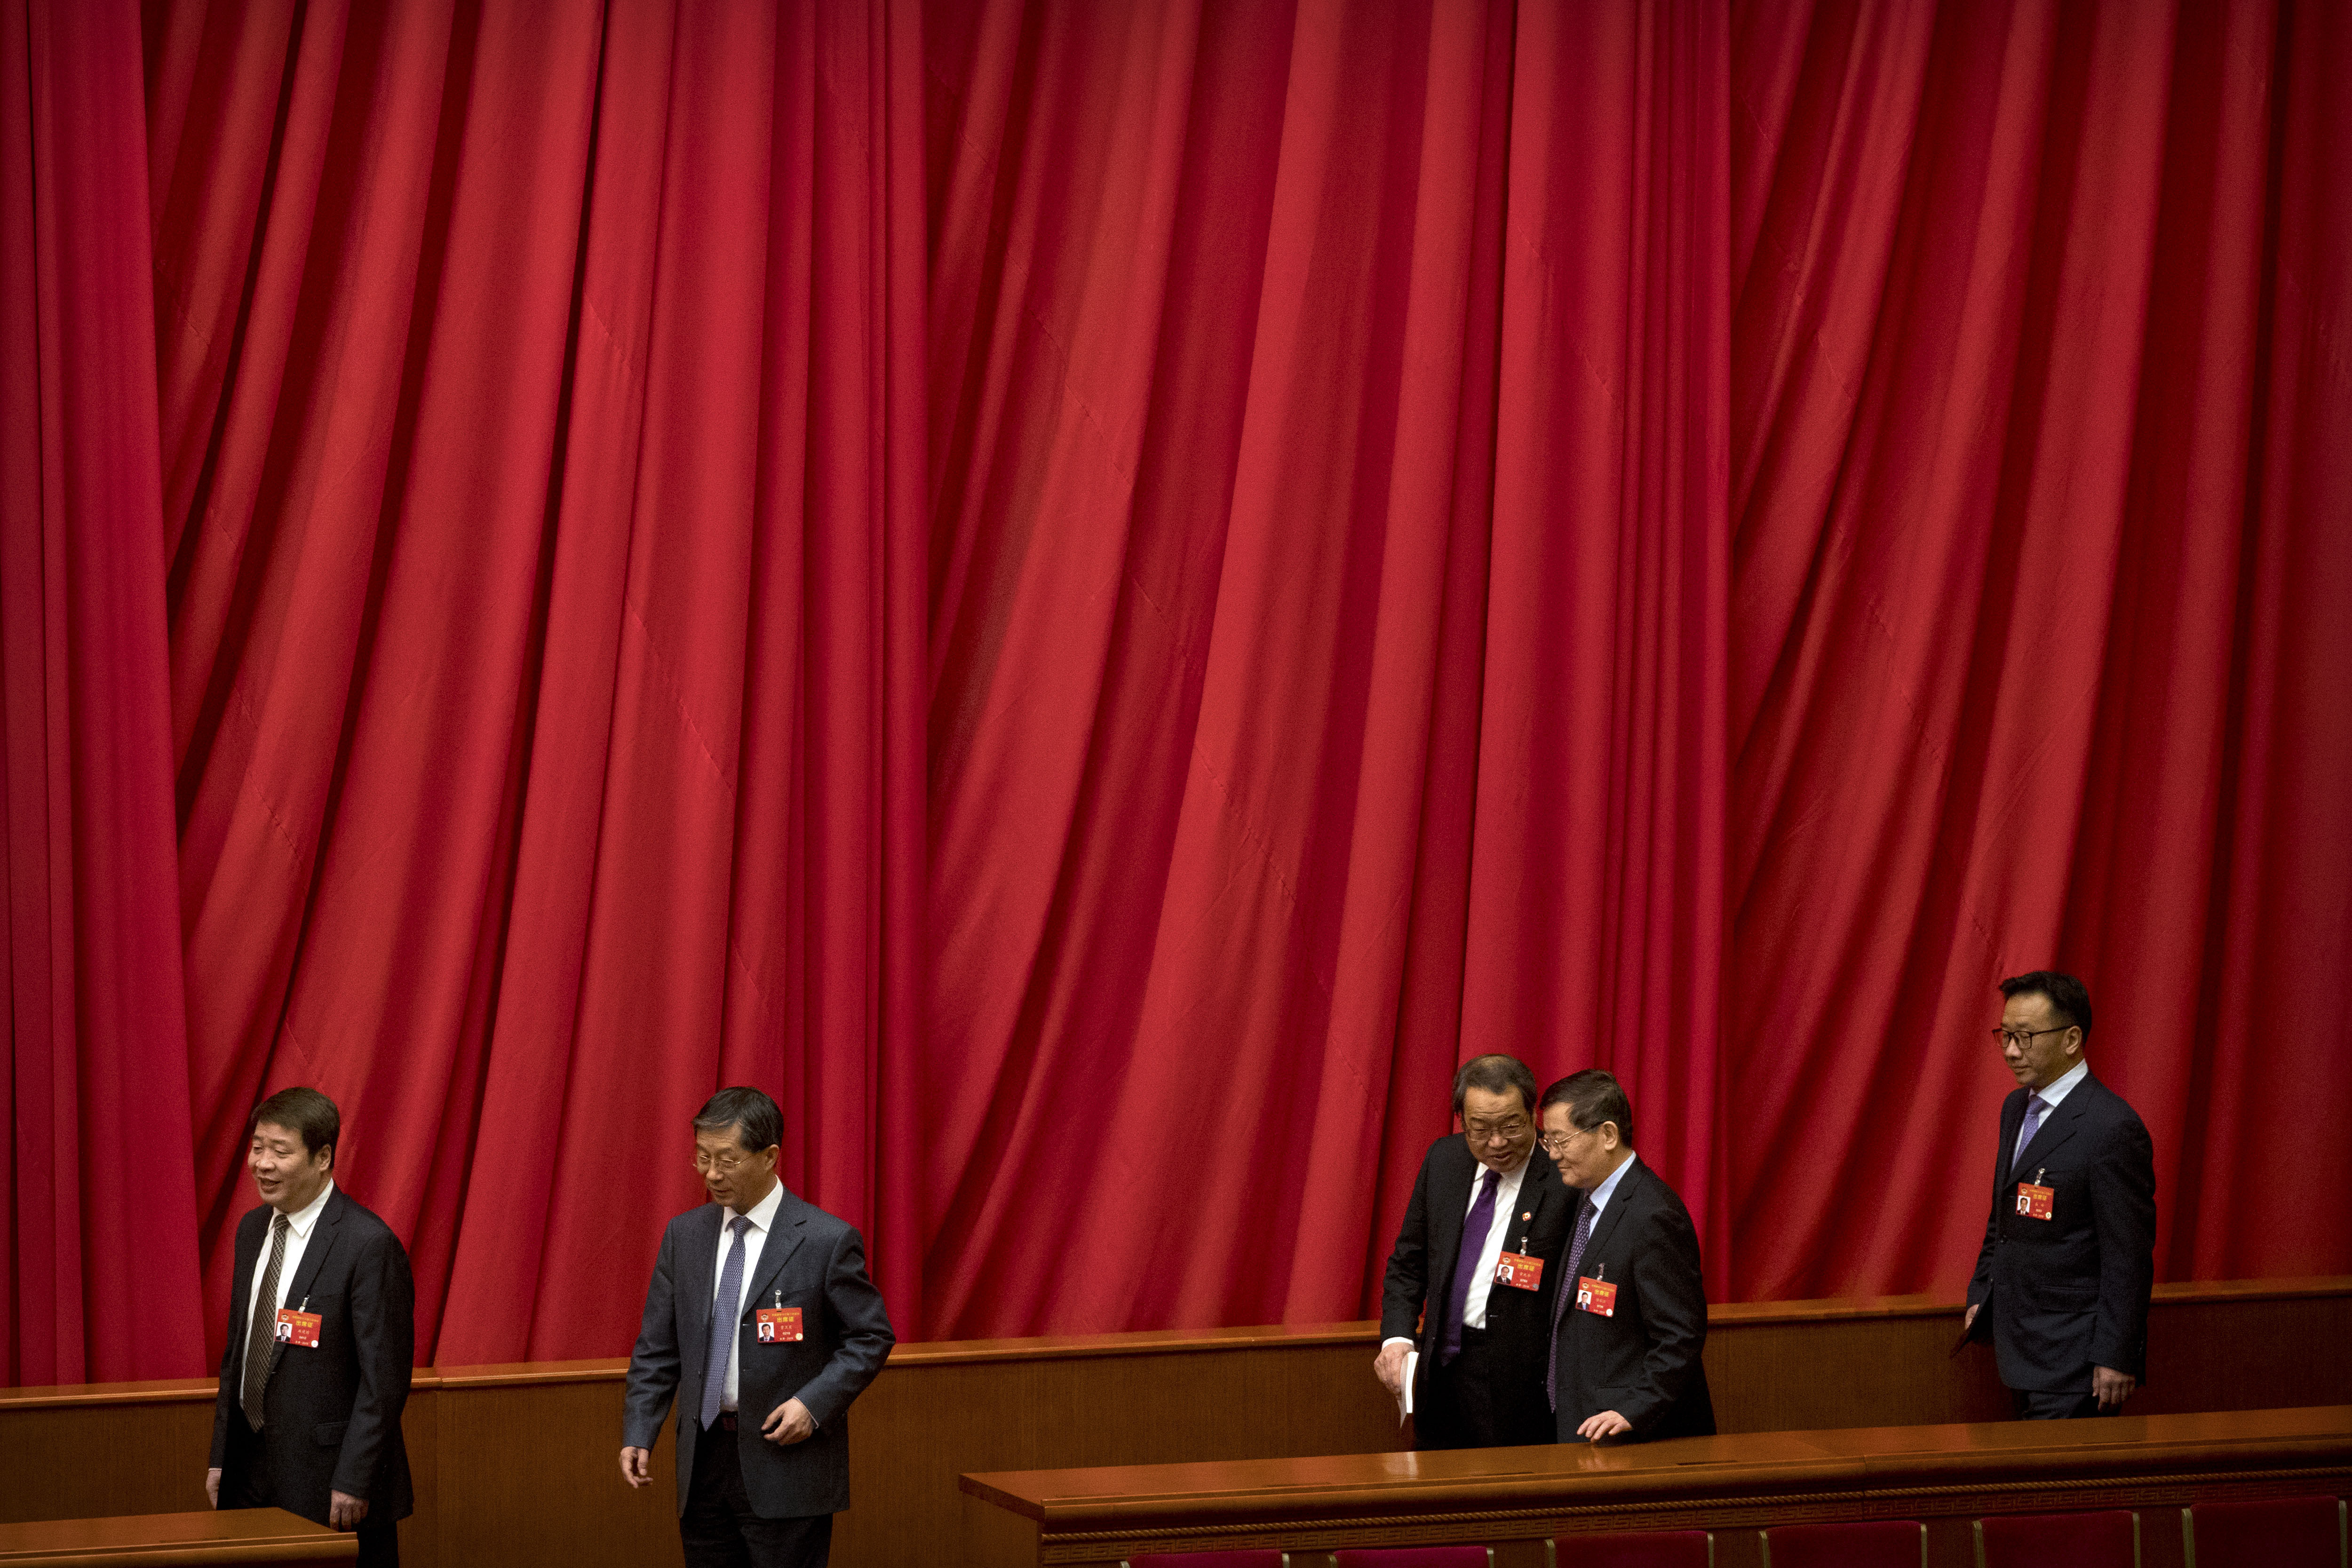 Delegates arrive for the closing session of the Chinese People's Political Consultative Conference (CPPCC) at the Great Hall of the People in Beijing, Wednesday, March 13, 2019. (AP Photo/Mark Schiefelbein)